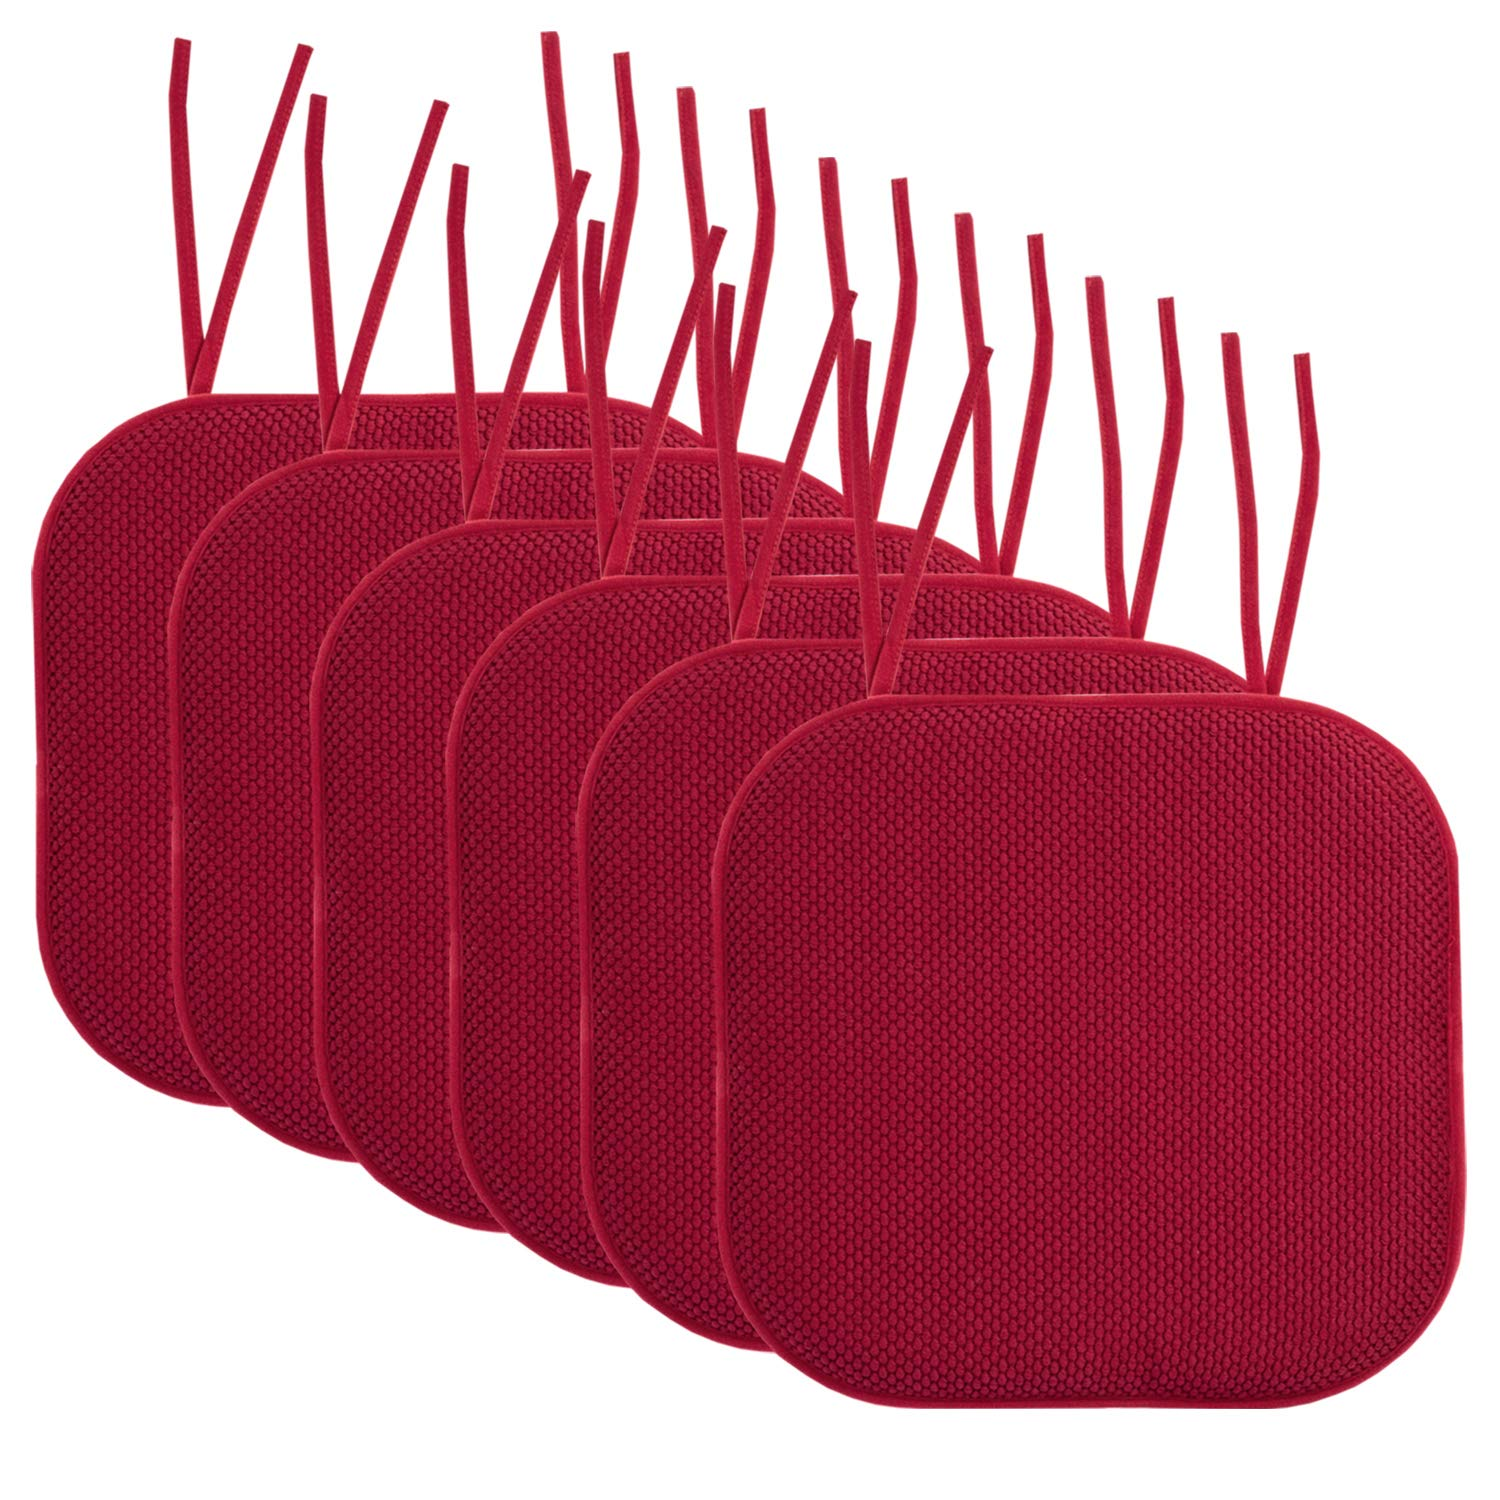 "Sweet Home Collection Chair Cushion Memory Foam Pads with Ties Honeycomb Pattern Slip Non Skid Rubber Back Rounded Square 16"" x 16"" Seat Cover, 6 Pack, Red"